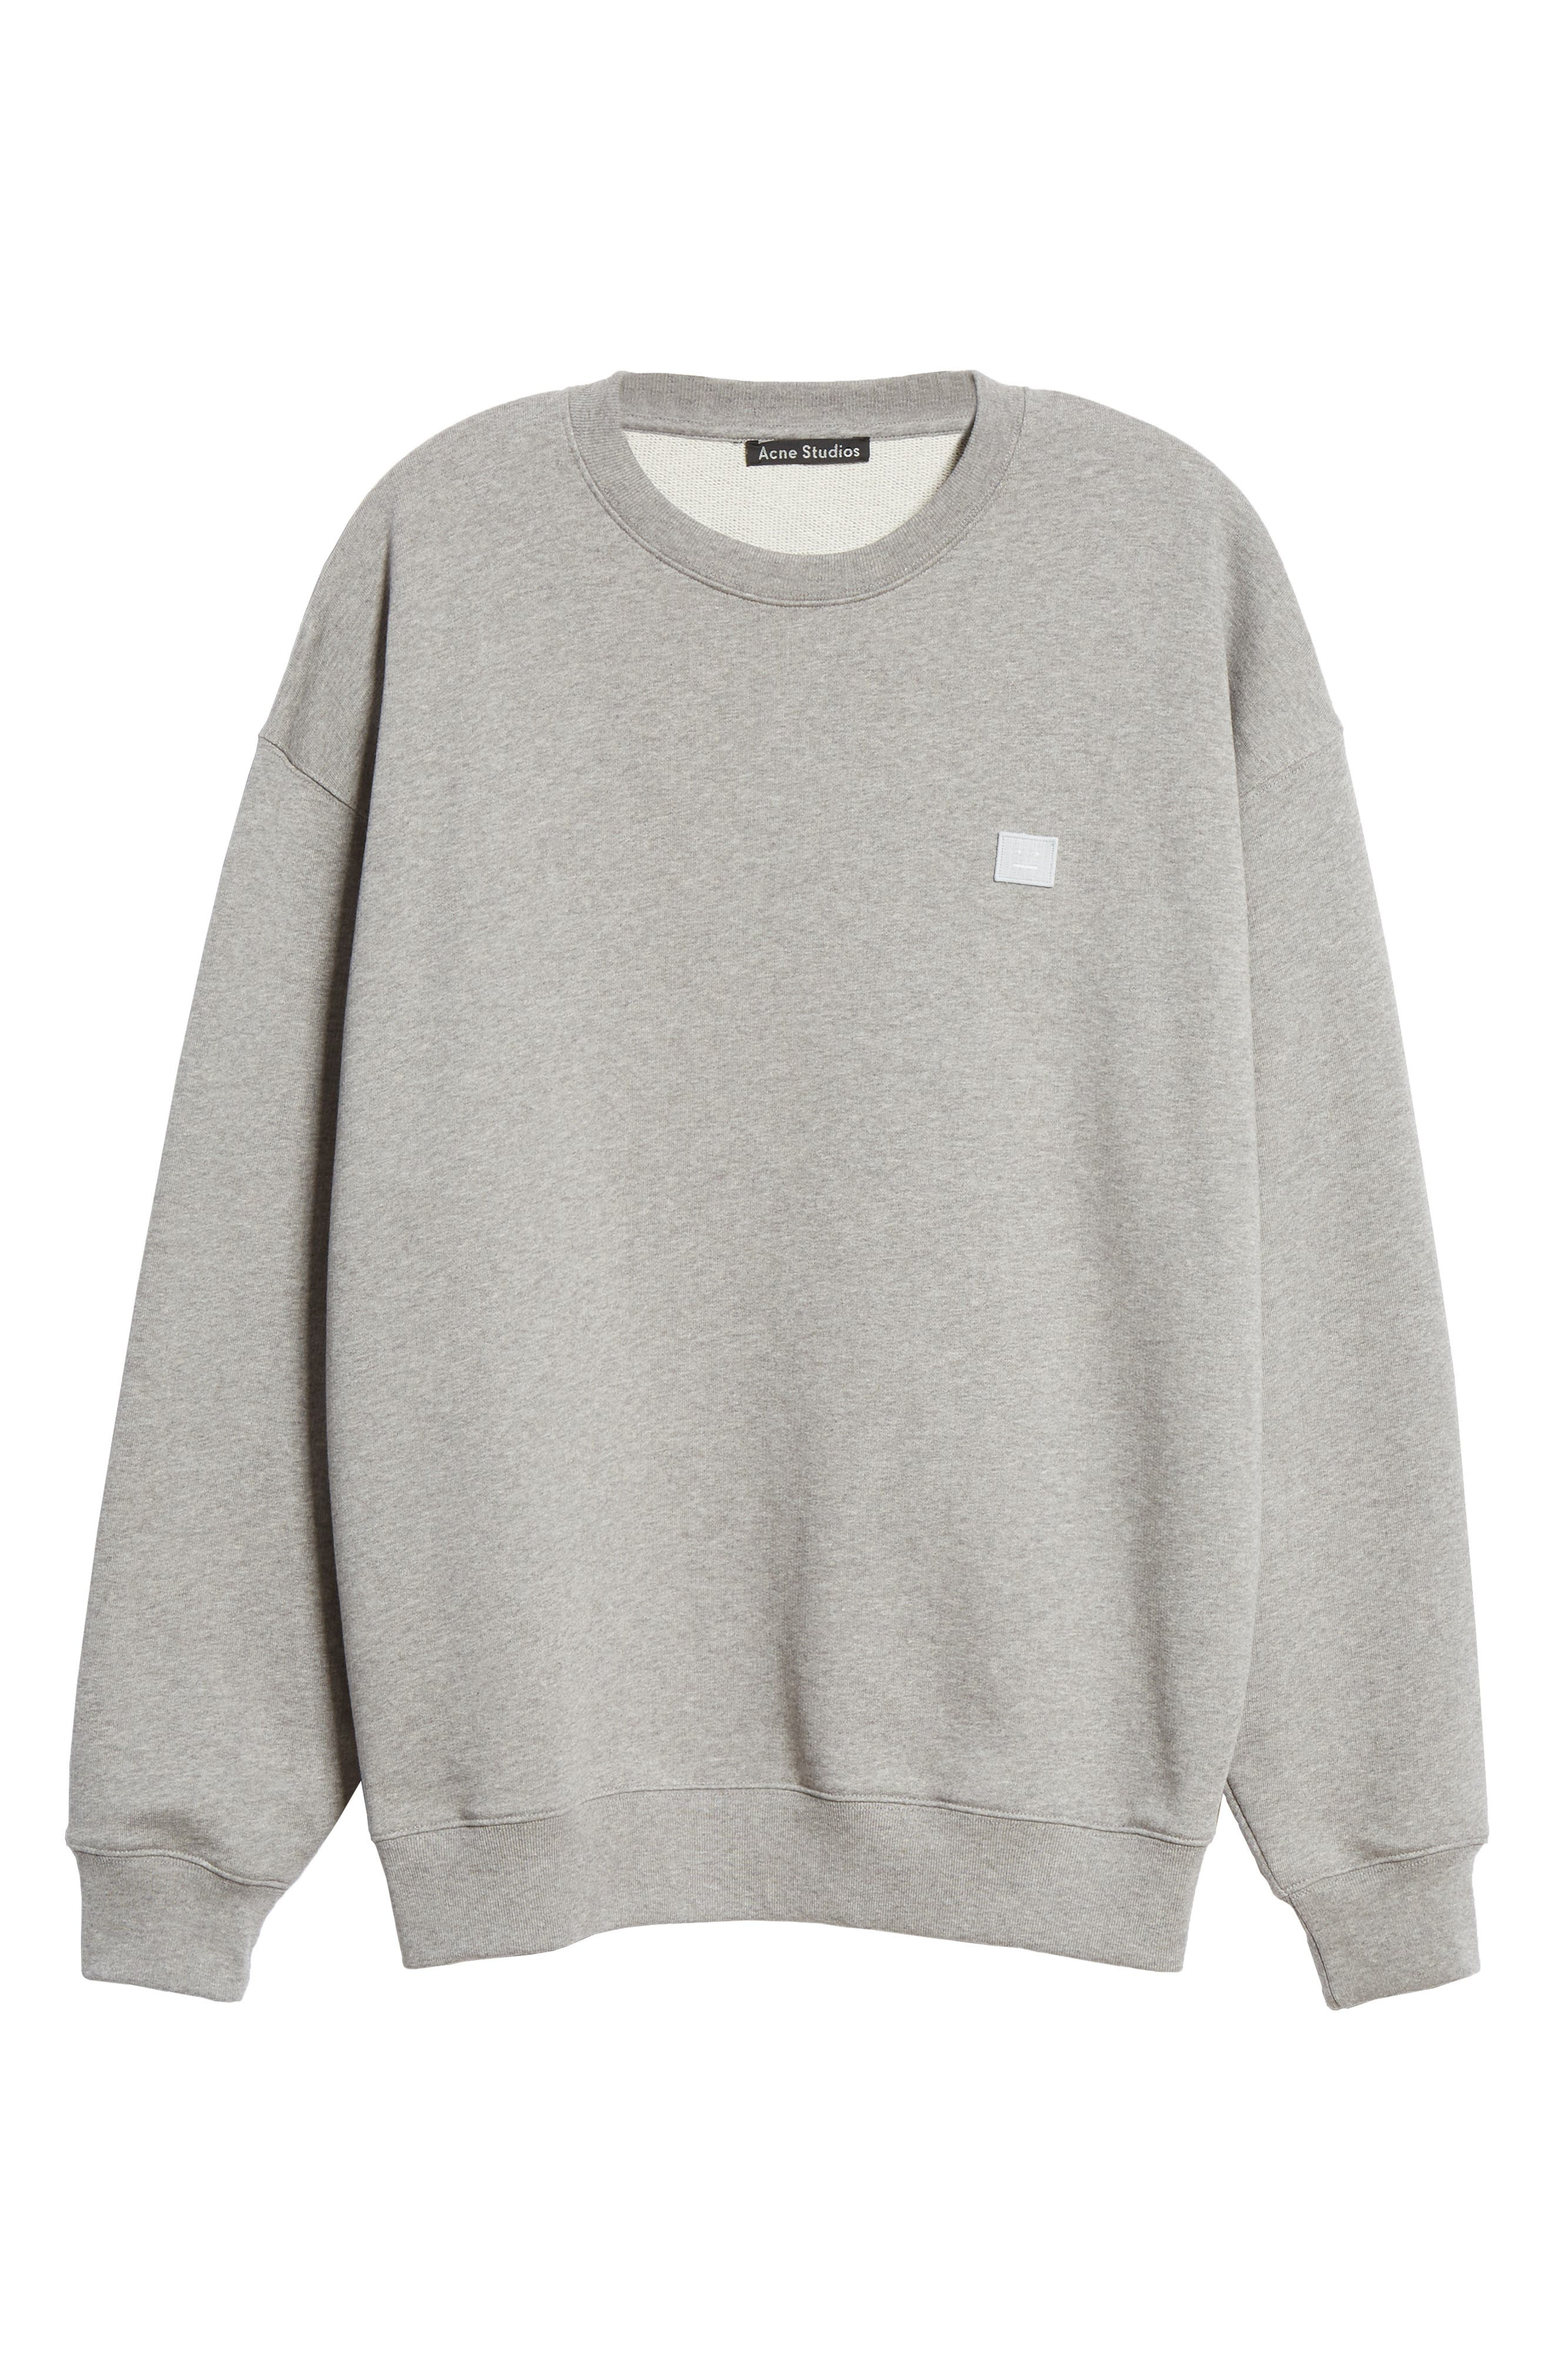 ACNE STUDIOS,                             Forba Face Sweatshirt,                             Alternate thumbnail 6, color,                             LIGHT GREY MELANGE